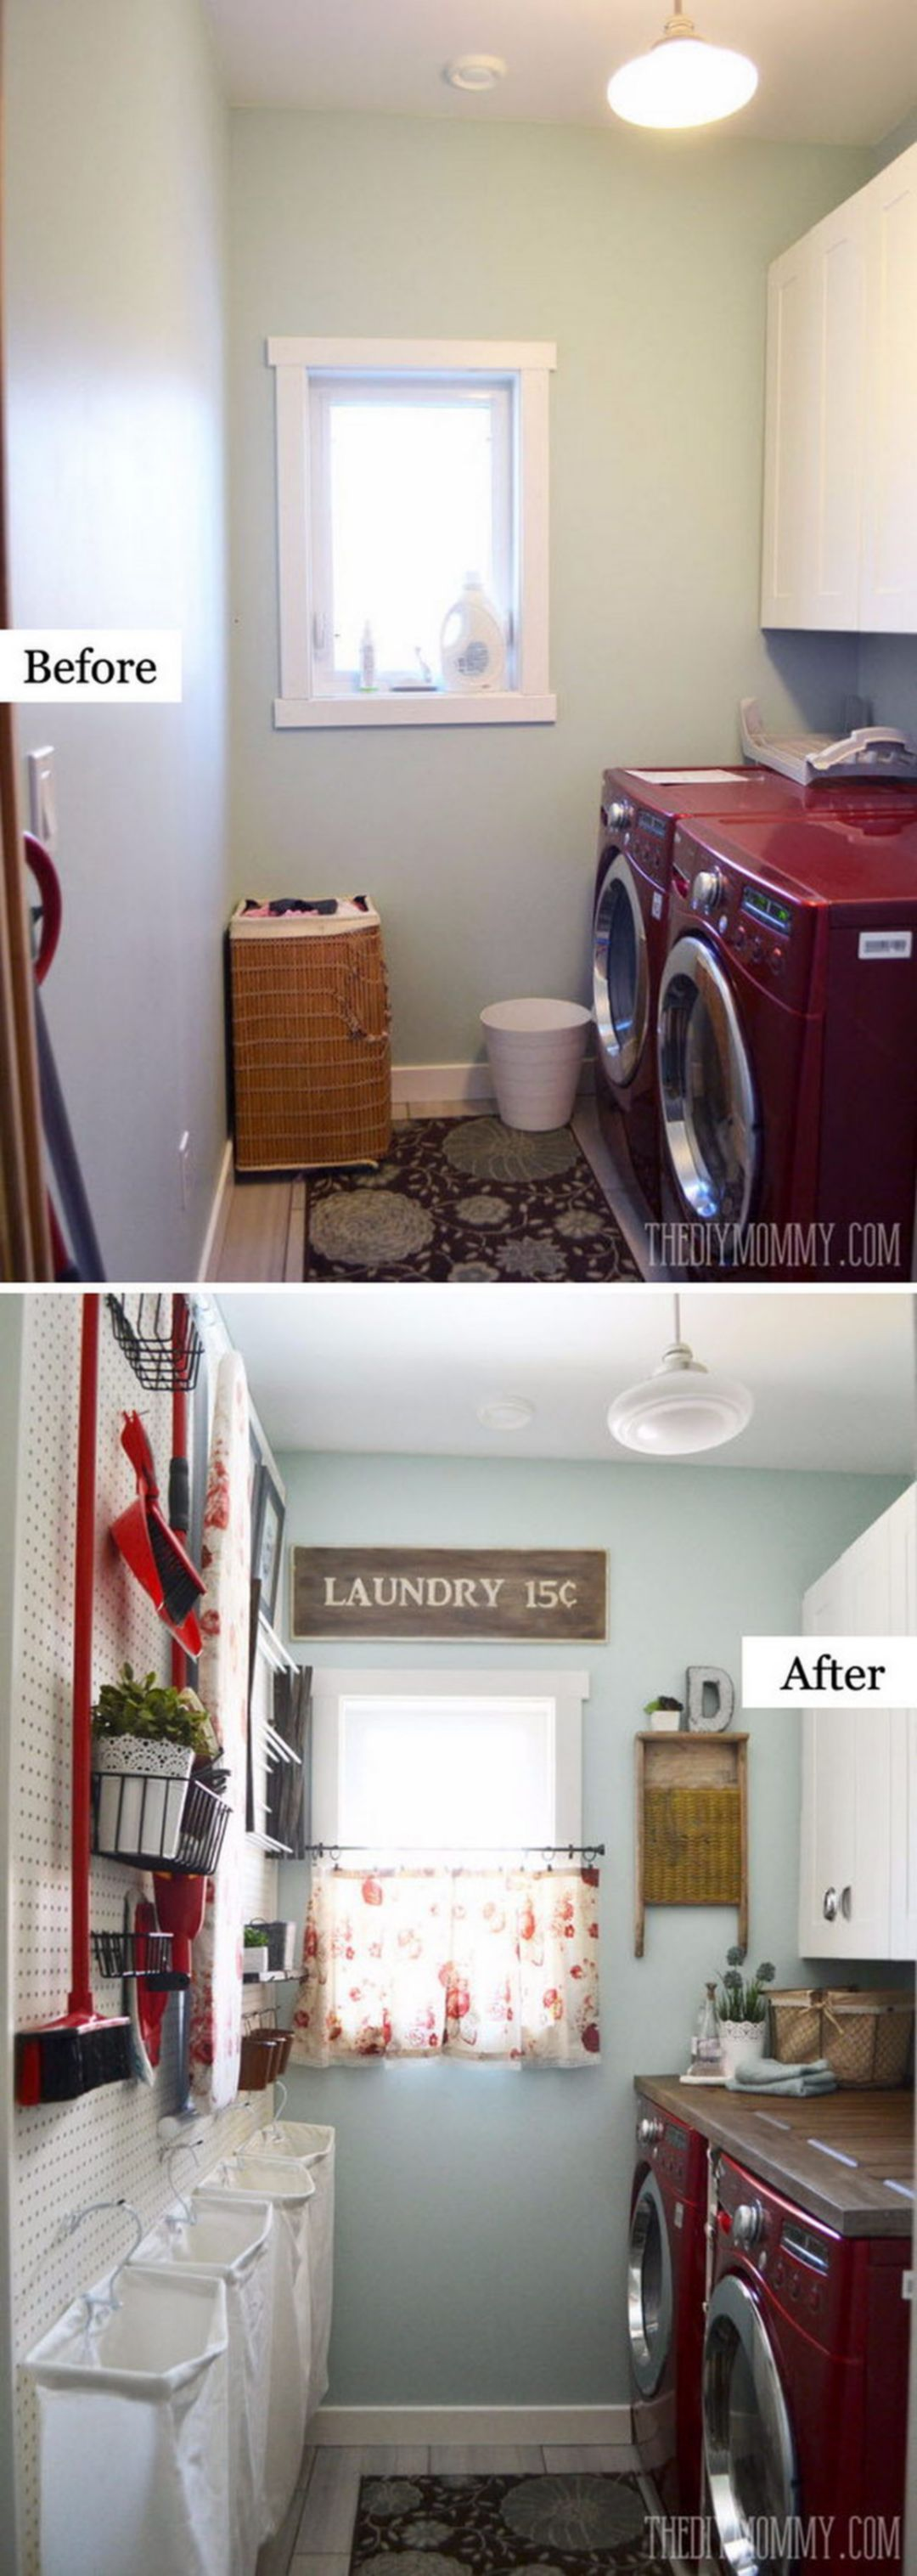 small laundry room makeovers ideas 021 small laundry on effectively laundry room decoration ideas easy ideas to inspire you id=15343